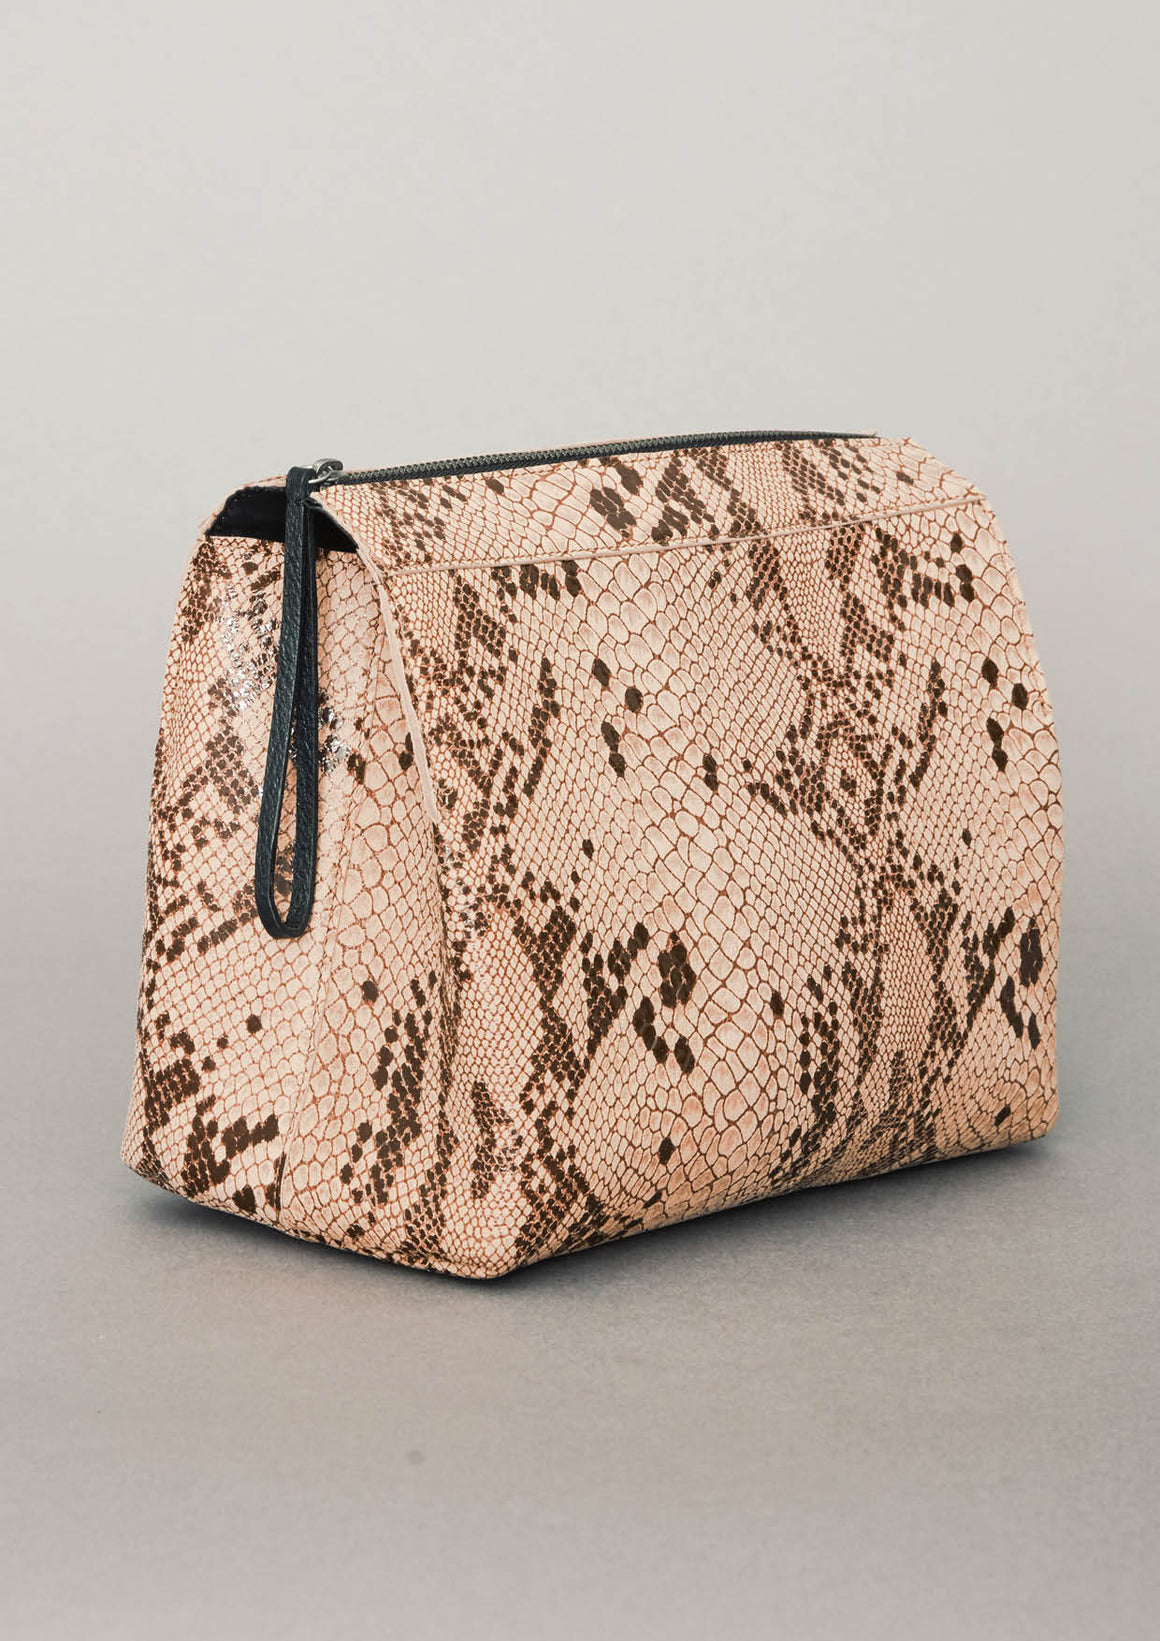 WASH BAG/PURSE - LEATHER printed snake beige/brown